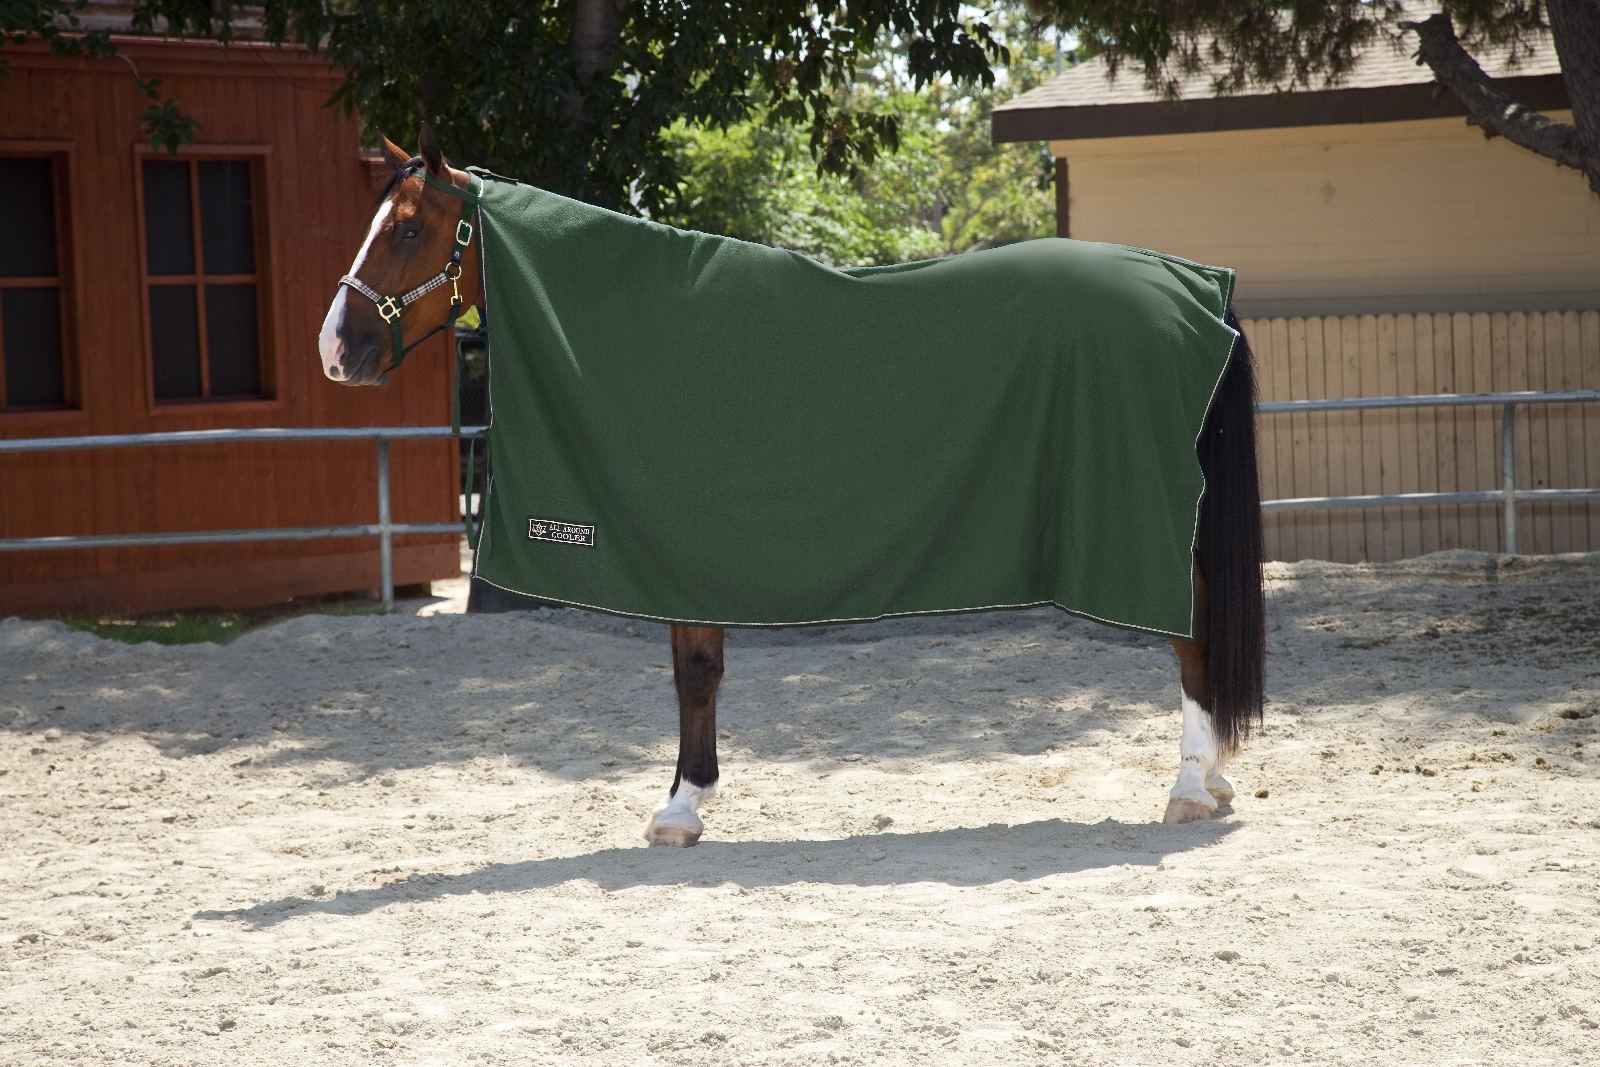 Kensington Polar Fleece Cooler